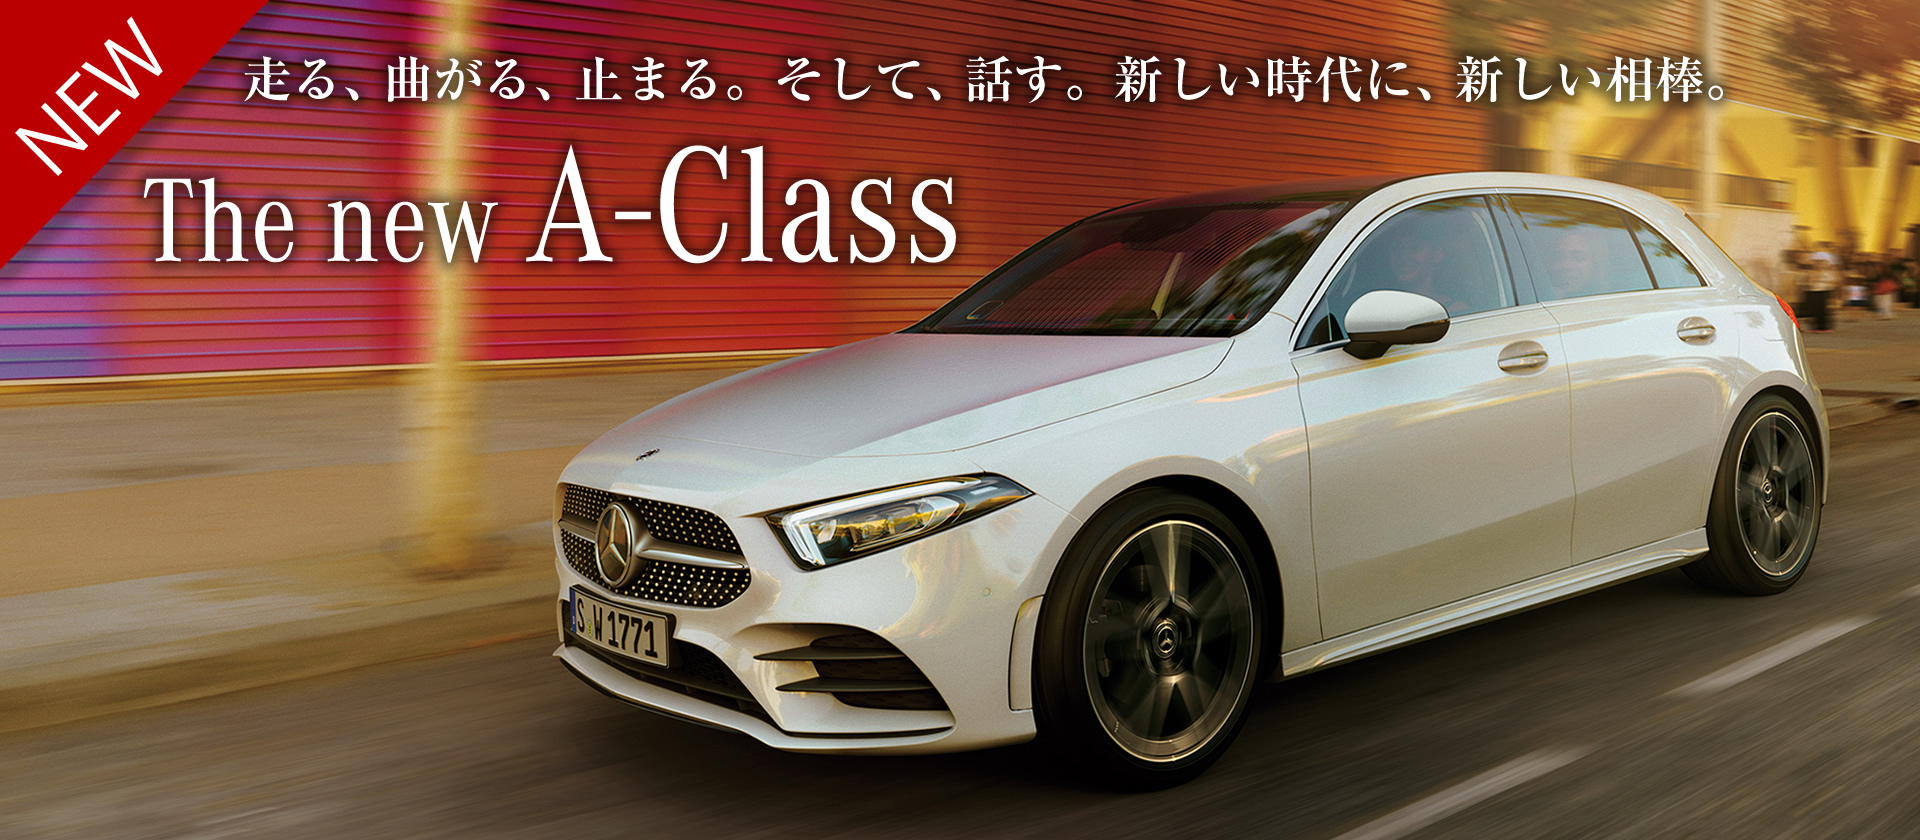 The new A-Class